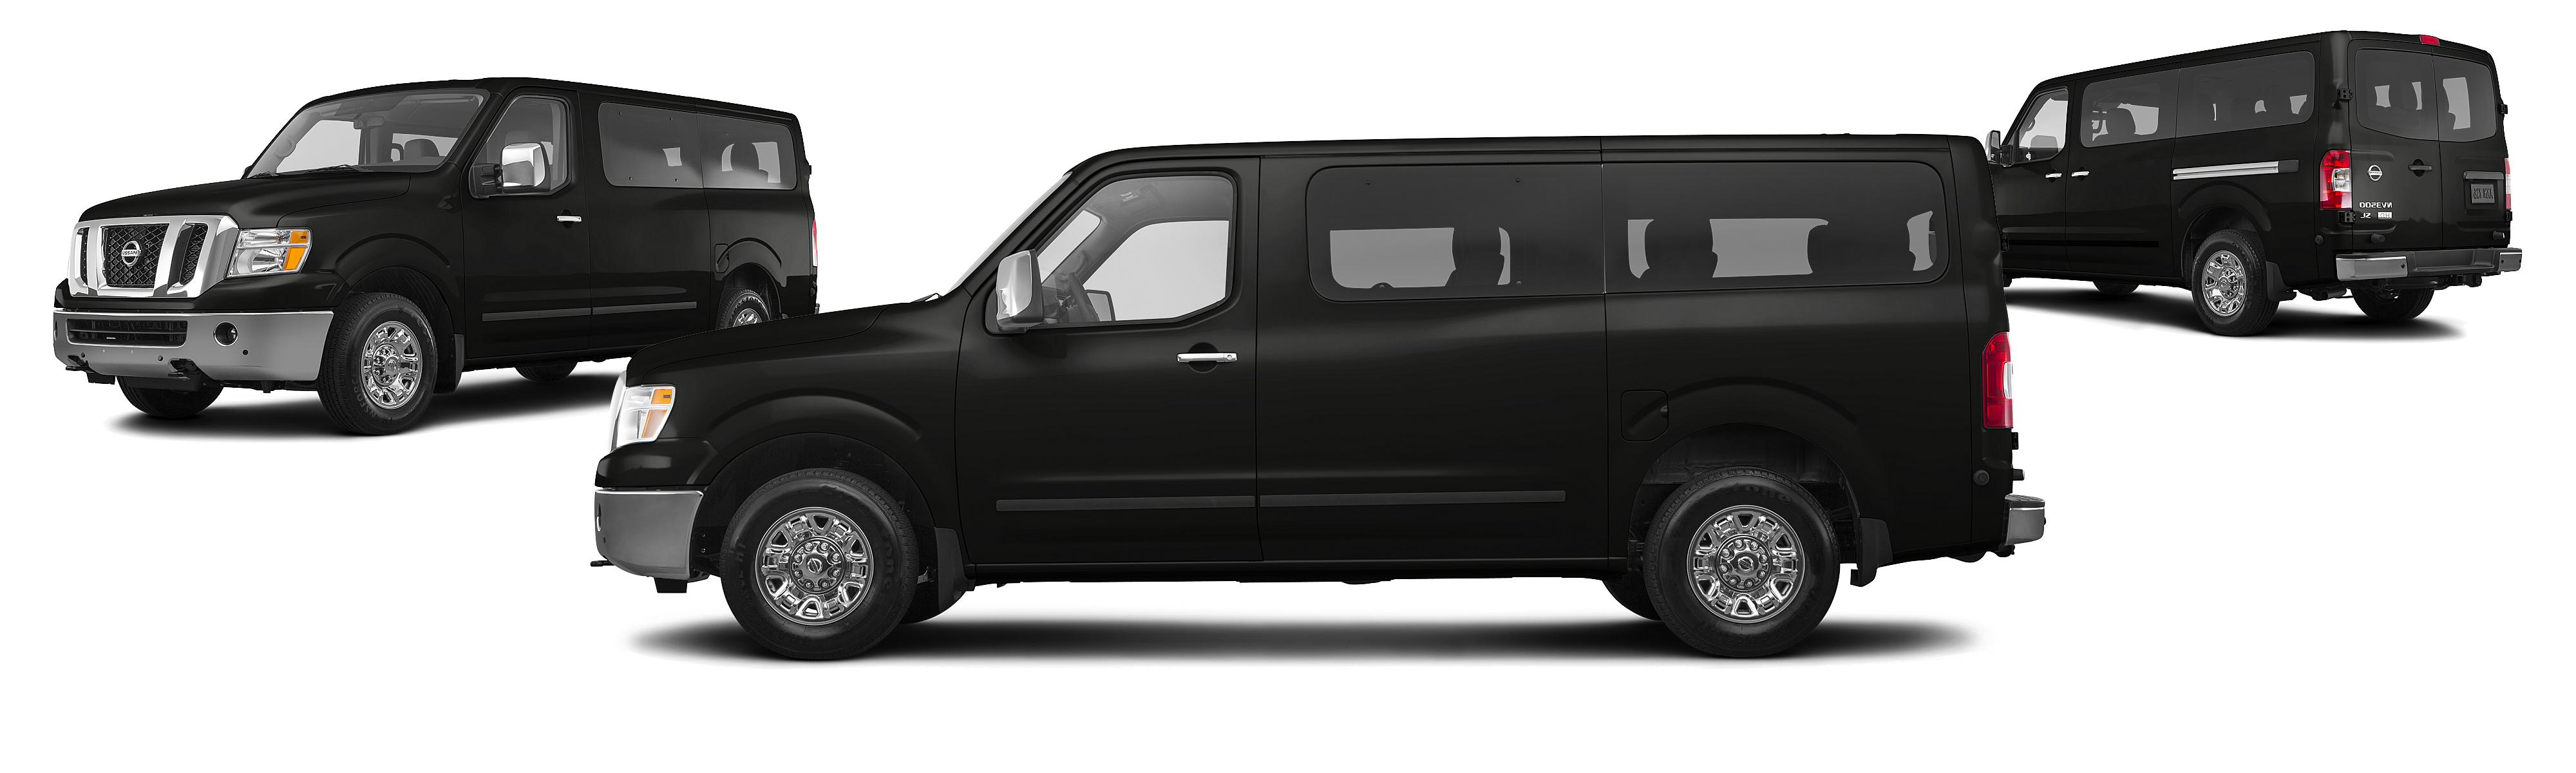 van super hd sl nv groovecar black nissan large passenger composite research